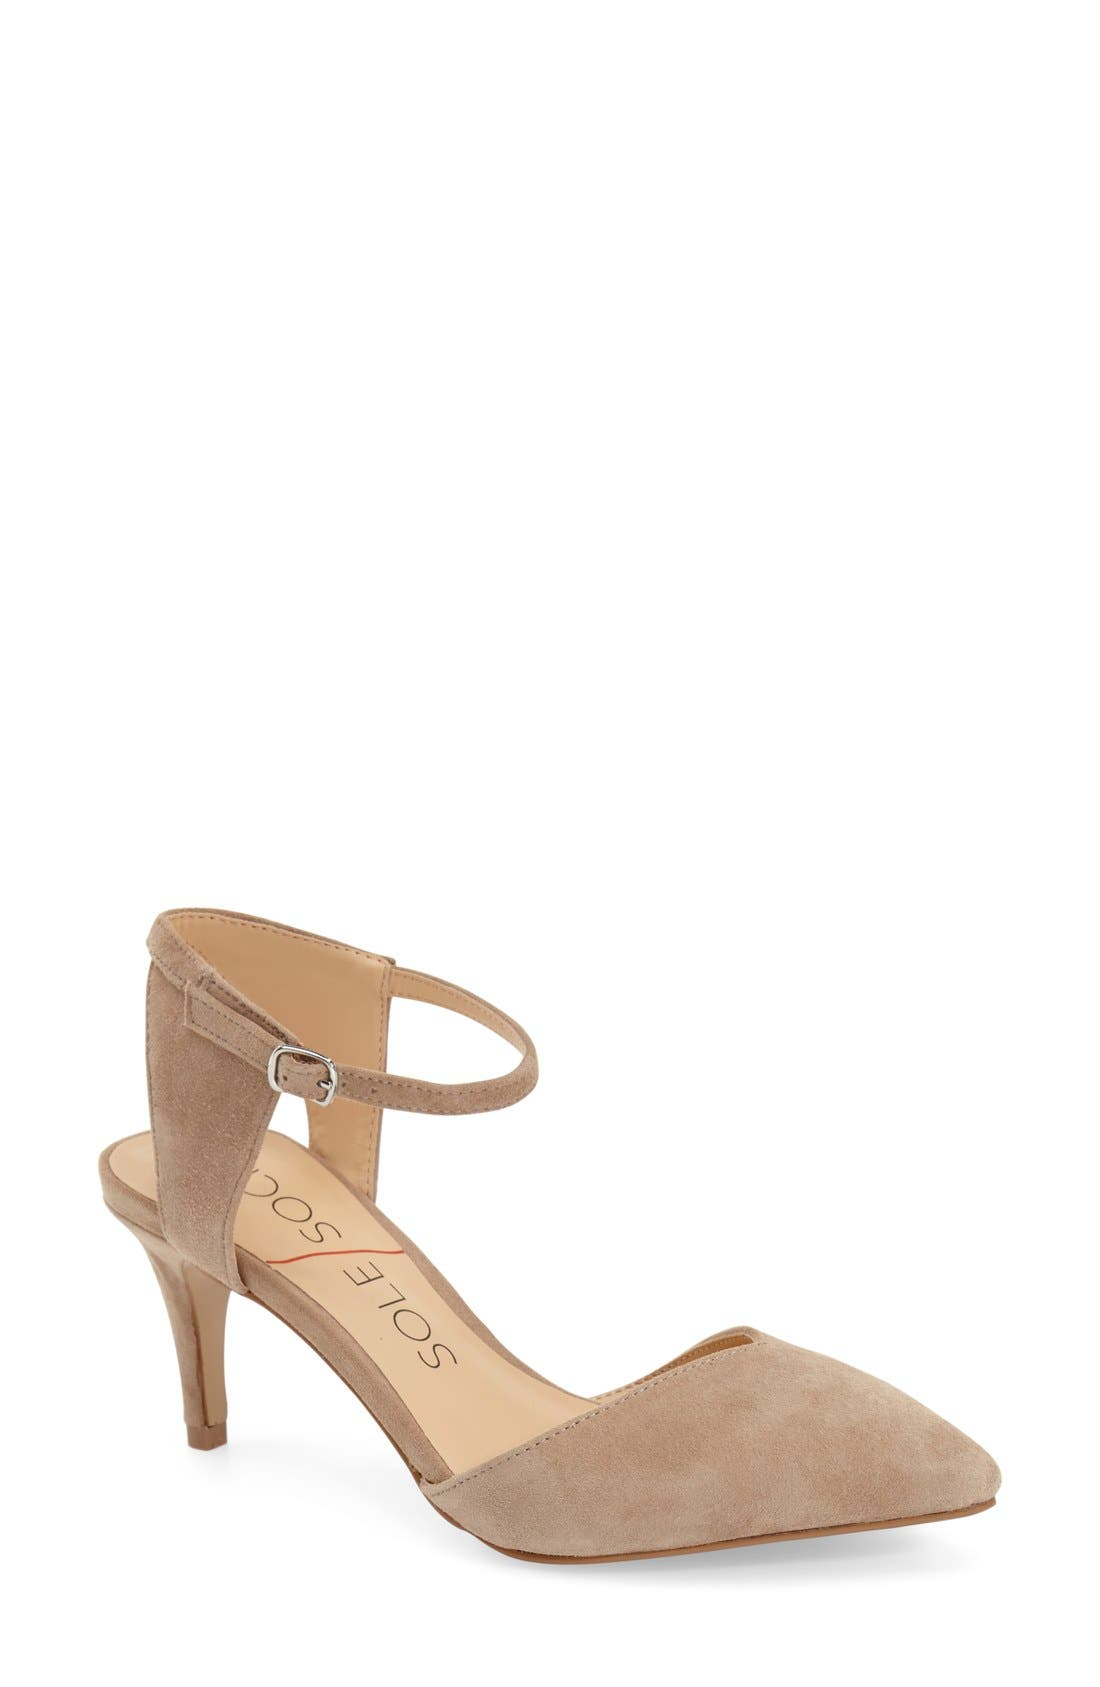 Alternate Image 1 Selected - Sole Society 'Laurent' Pump (Women)